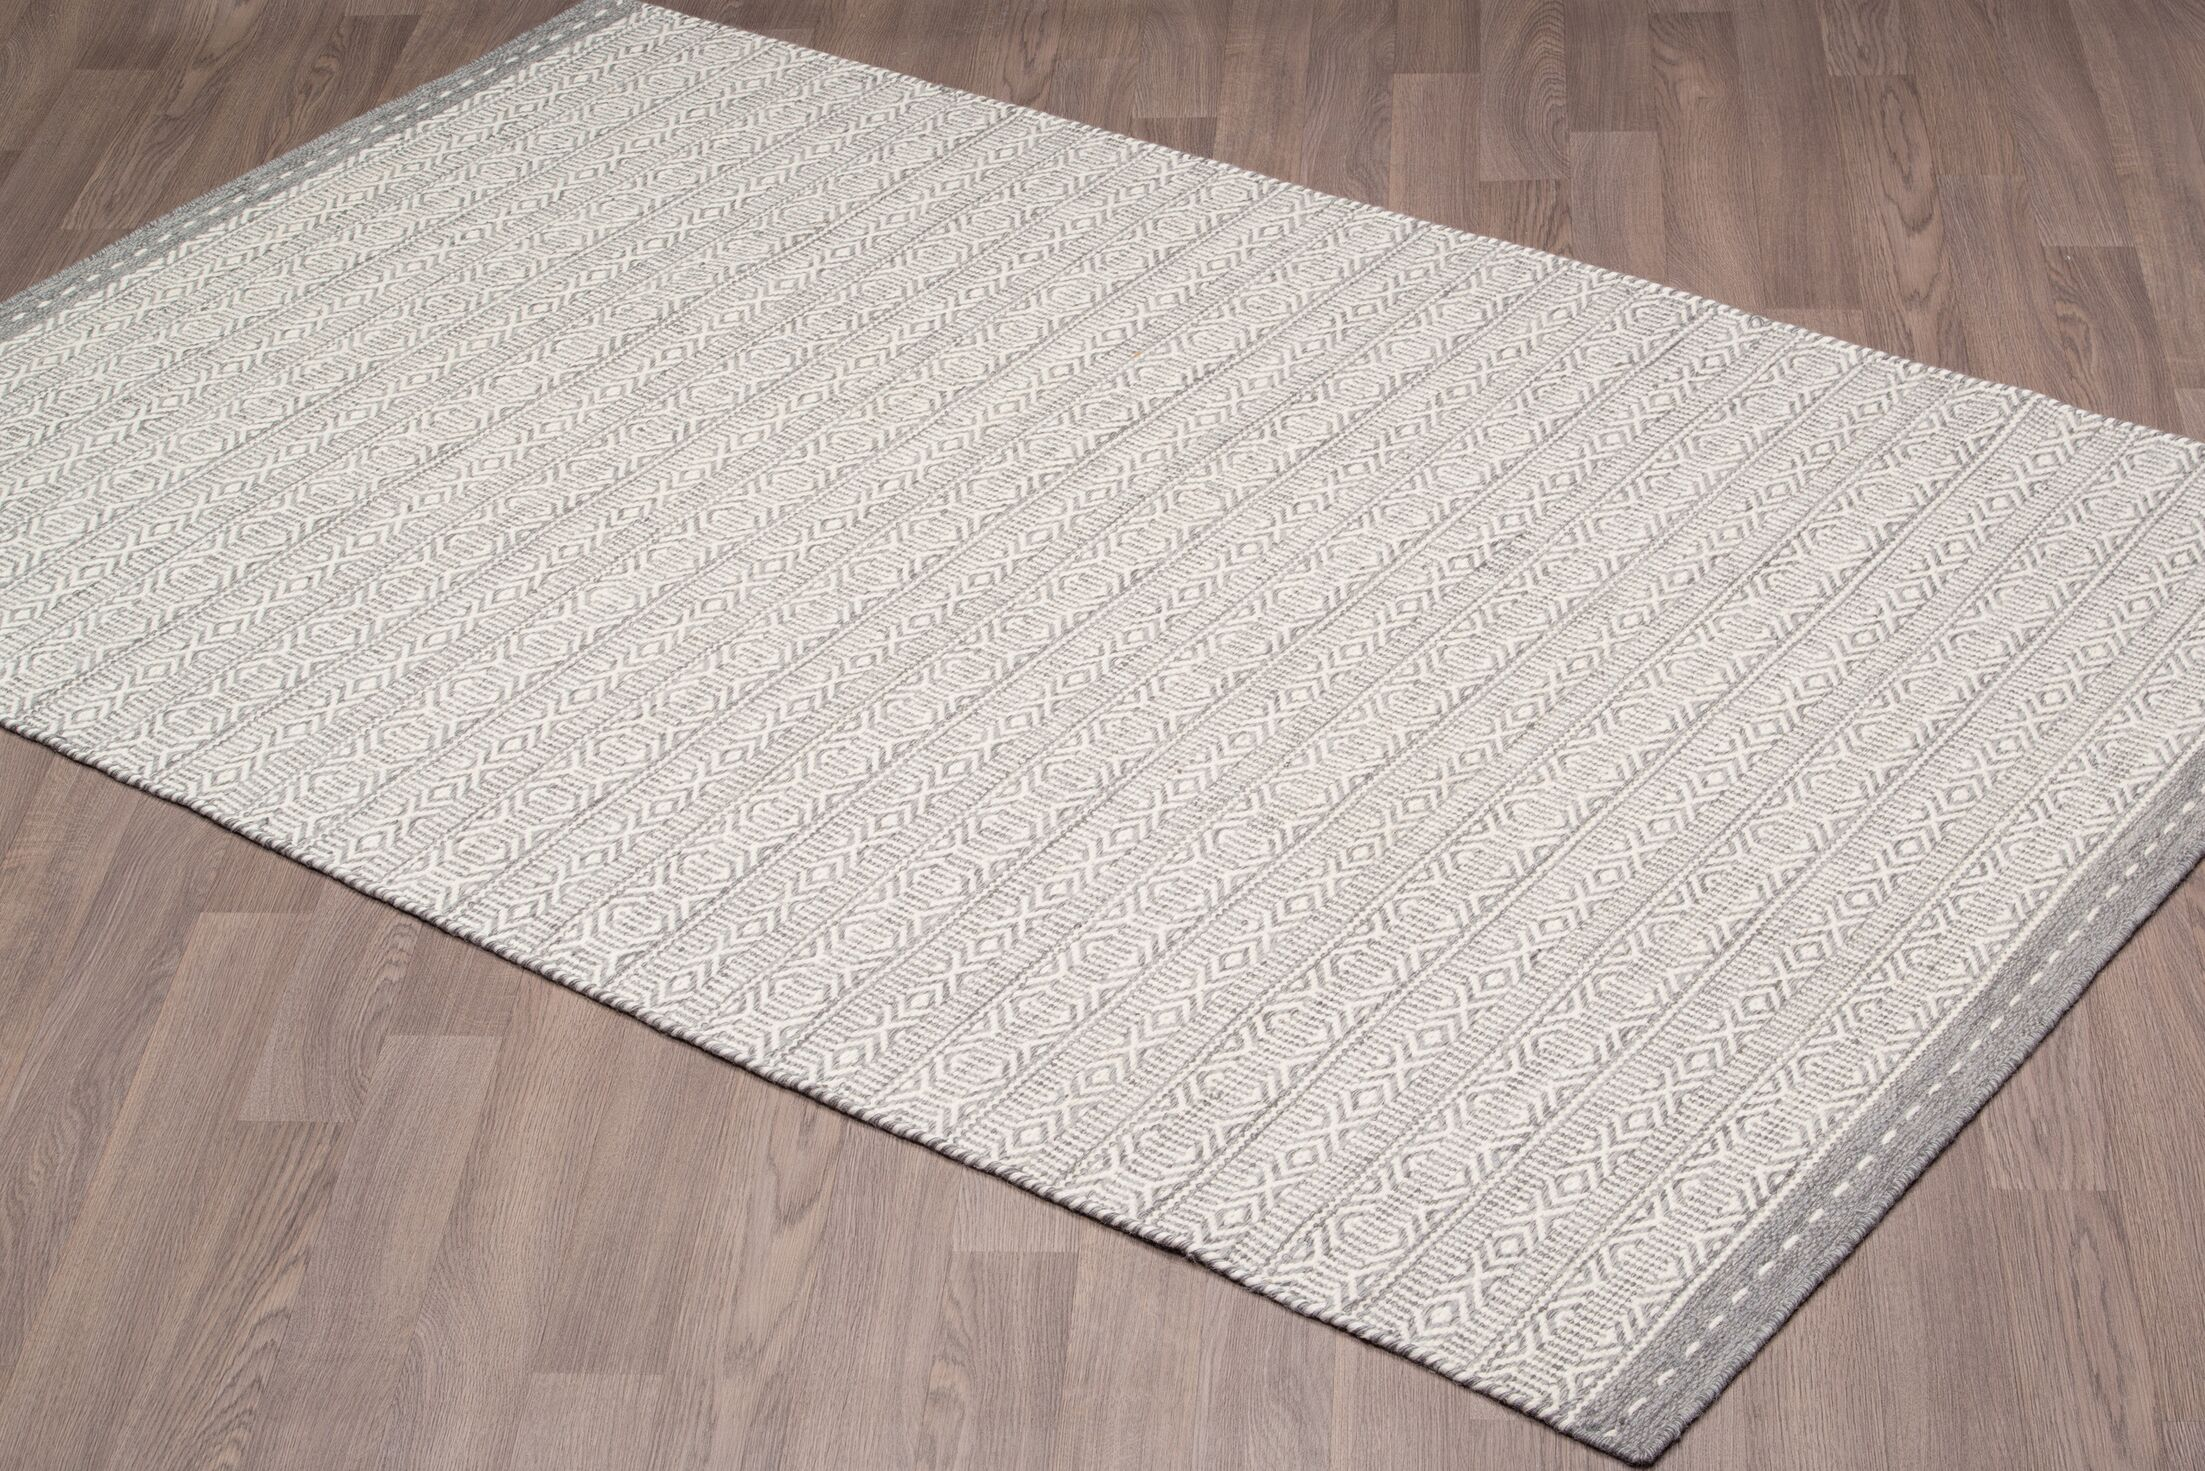 Backstrom Reversible Hand Woven Wool Ivory/Gray Area Rug Rug Size: Rectangle 8' x 10'